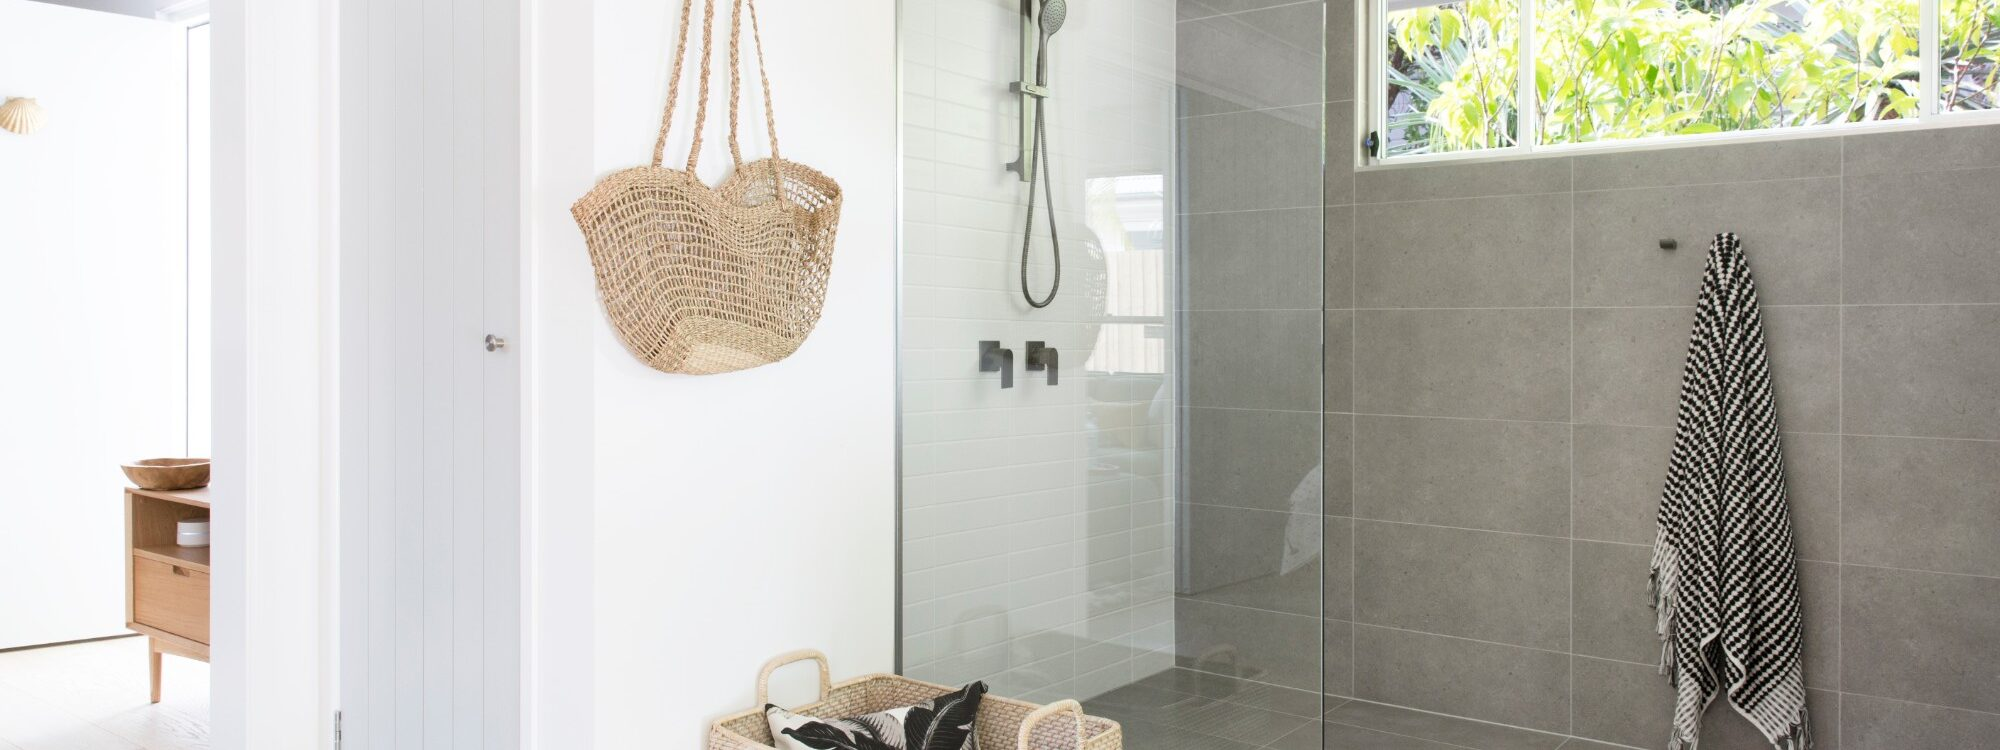 Barrel and Branch - Byron Bay - studio bathroom shower